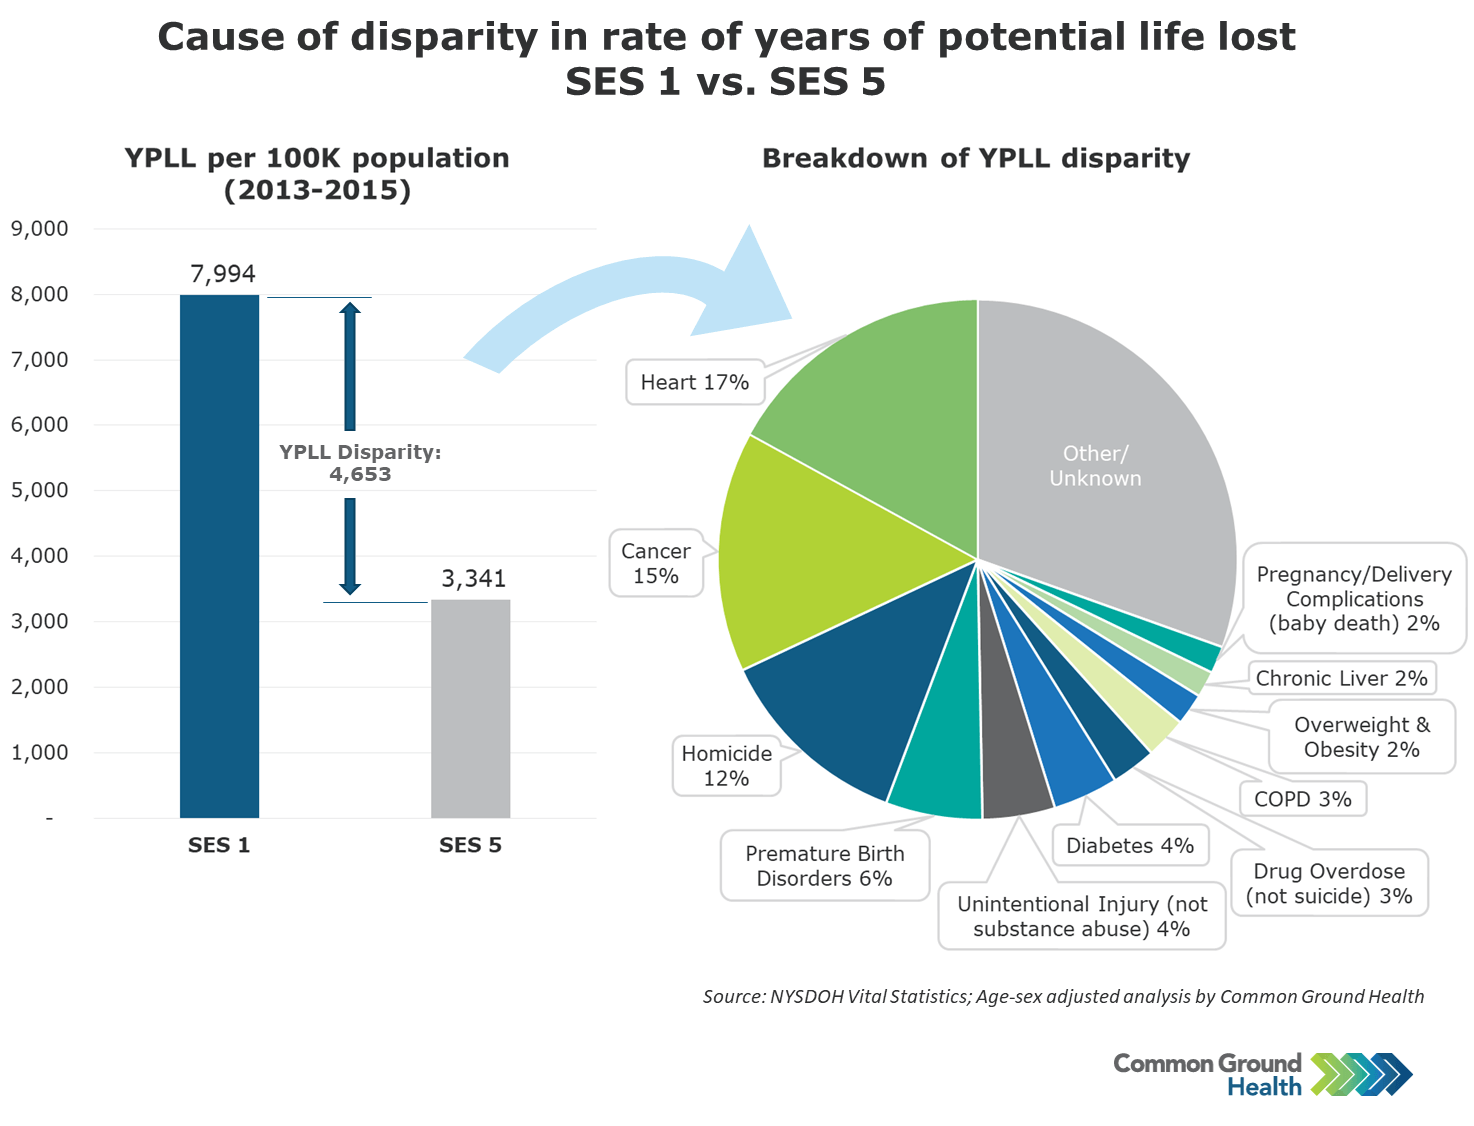 Cause of Disparity in Rate of Years of Potential Life Lost SES 1 vs SES 5